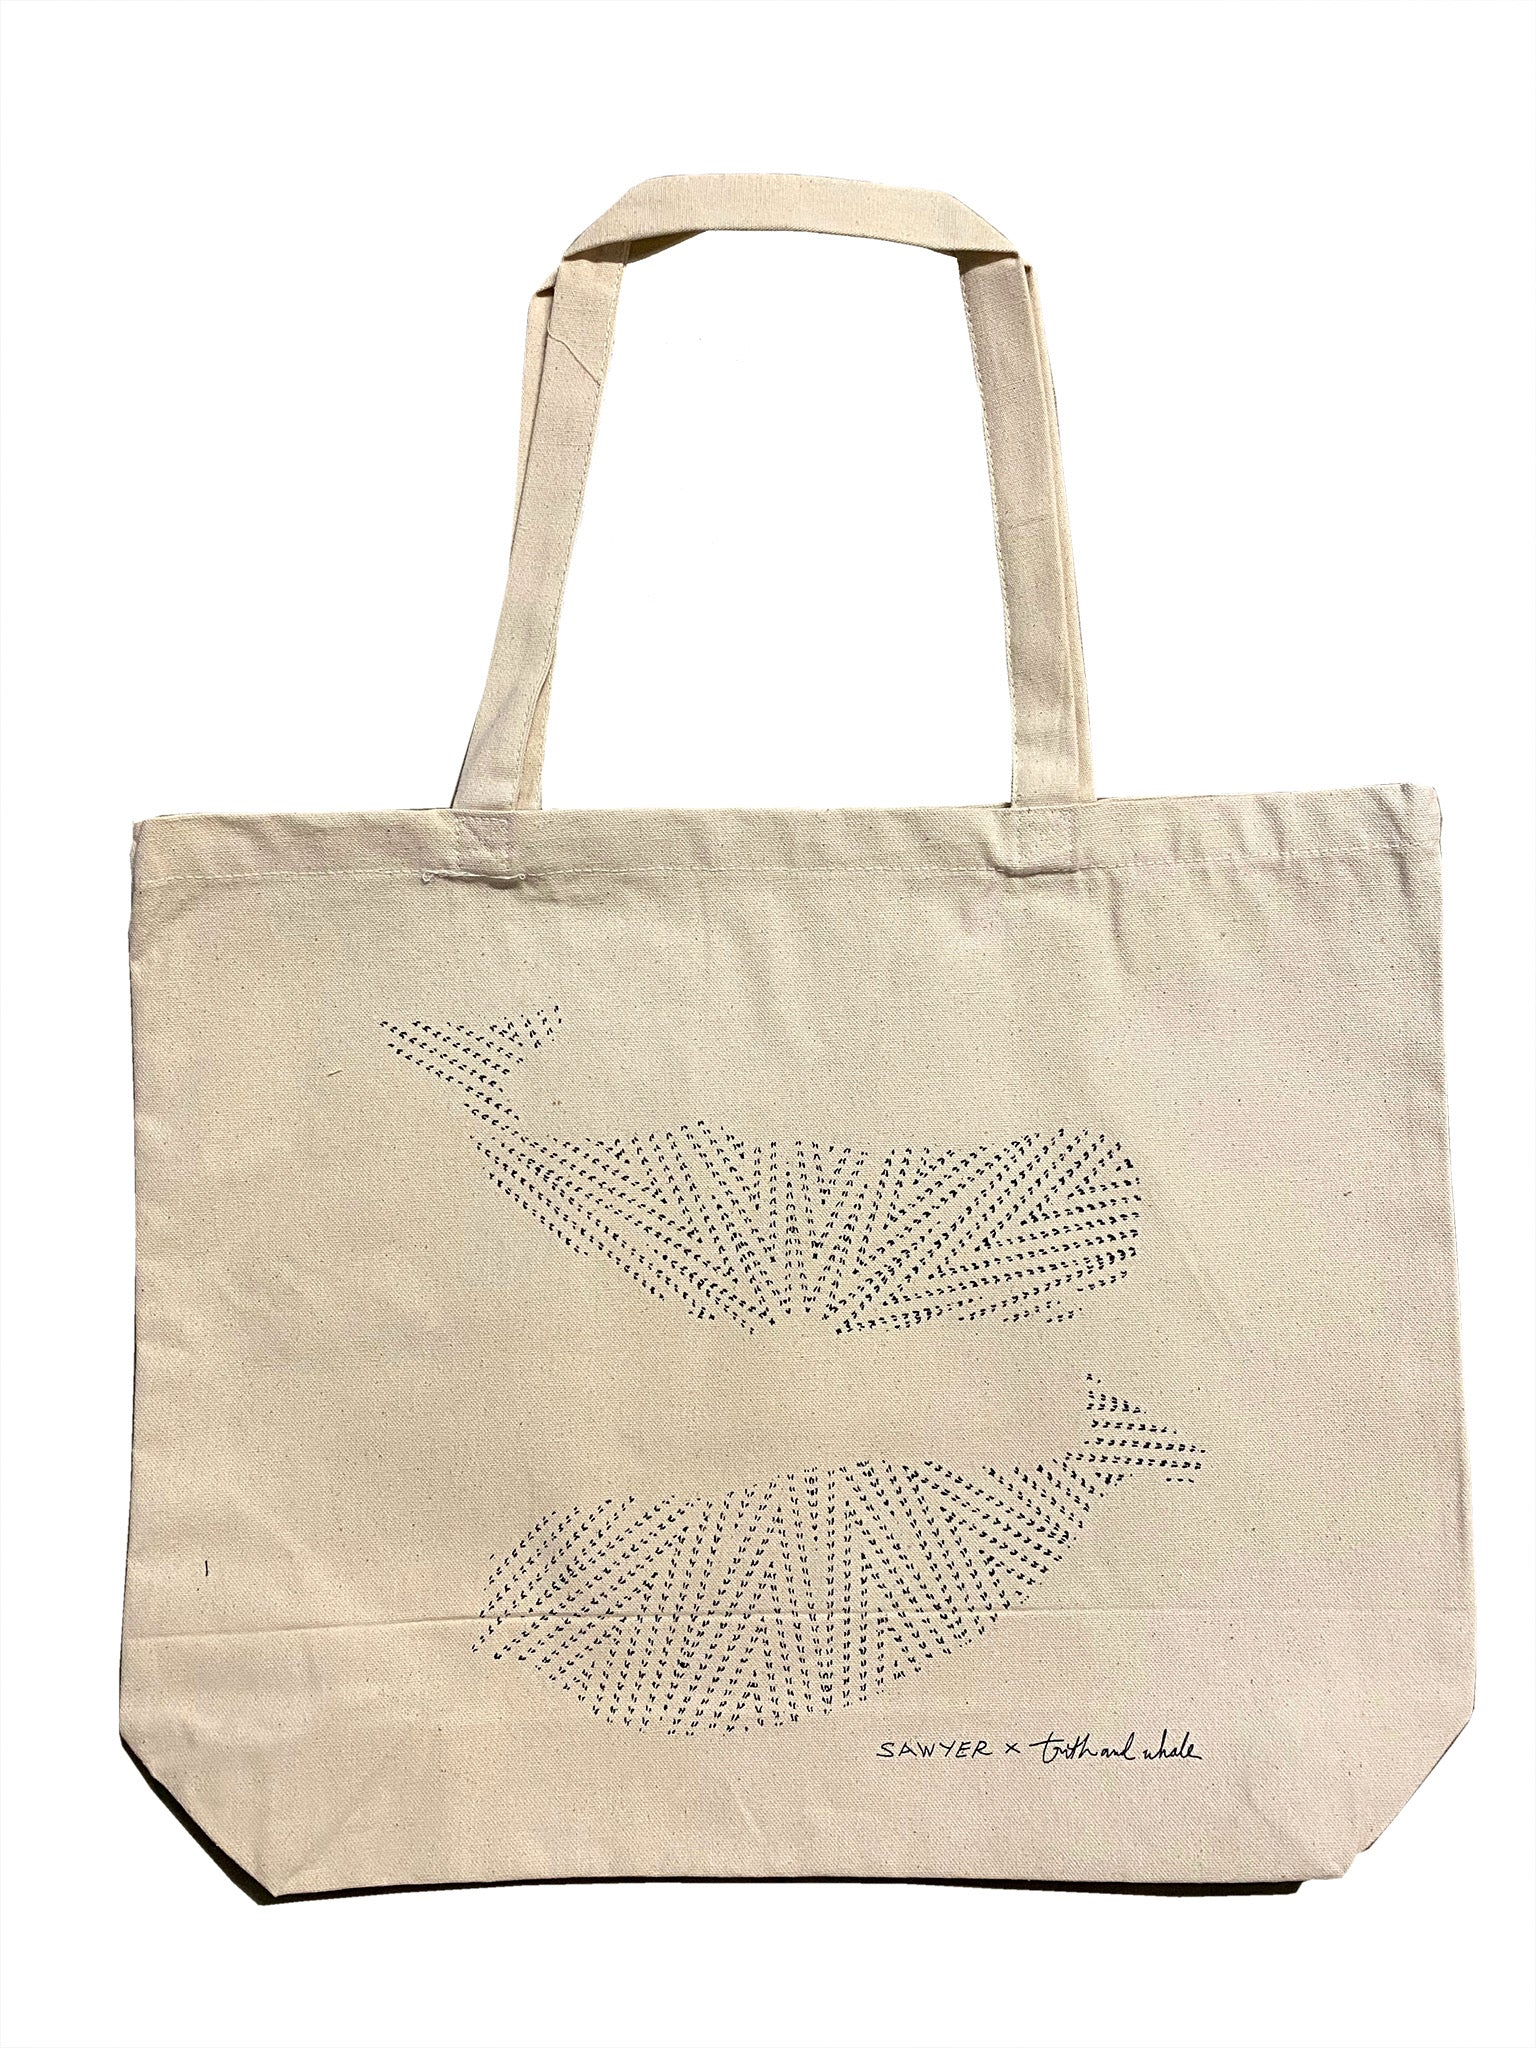 SAWYER x TRUTH & WHALE DISCO TOTE